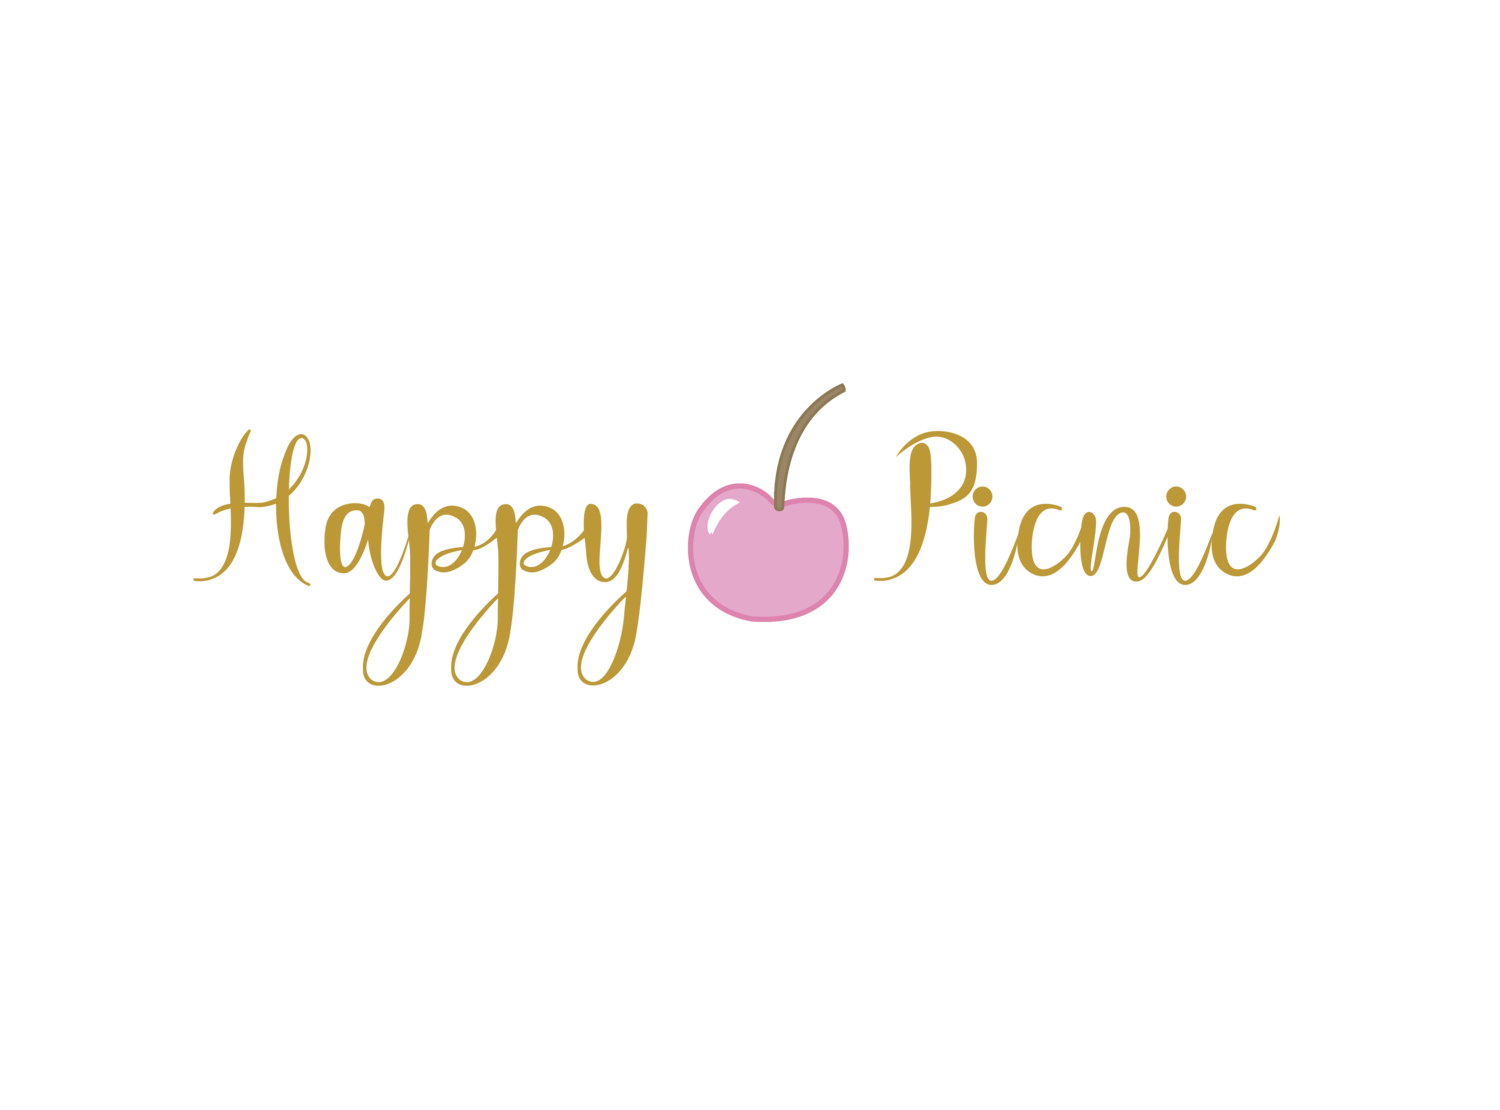 Happy Picnic